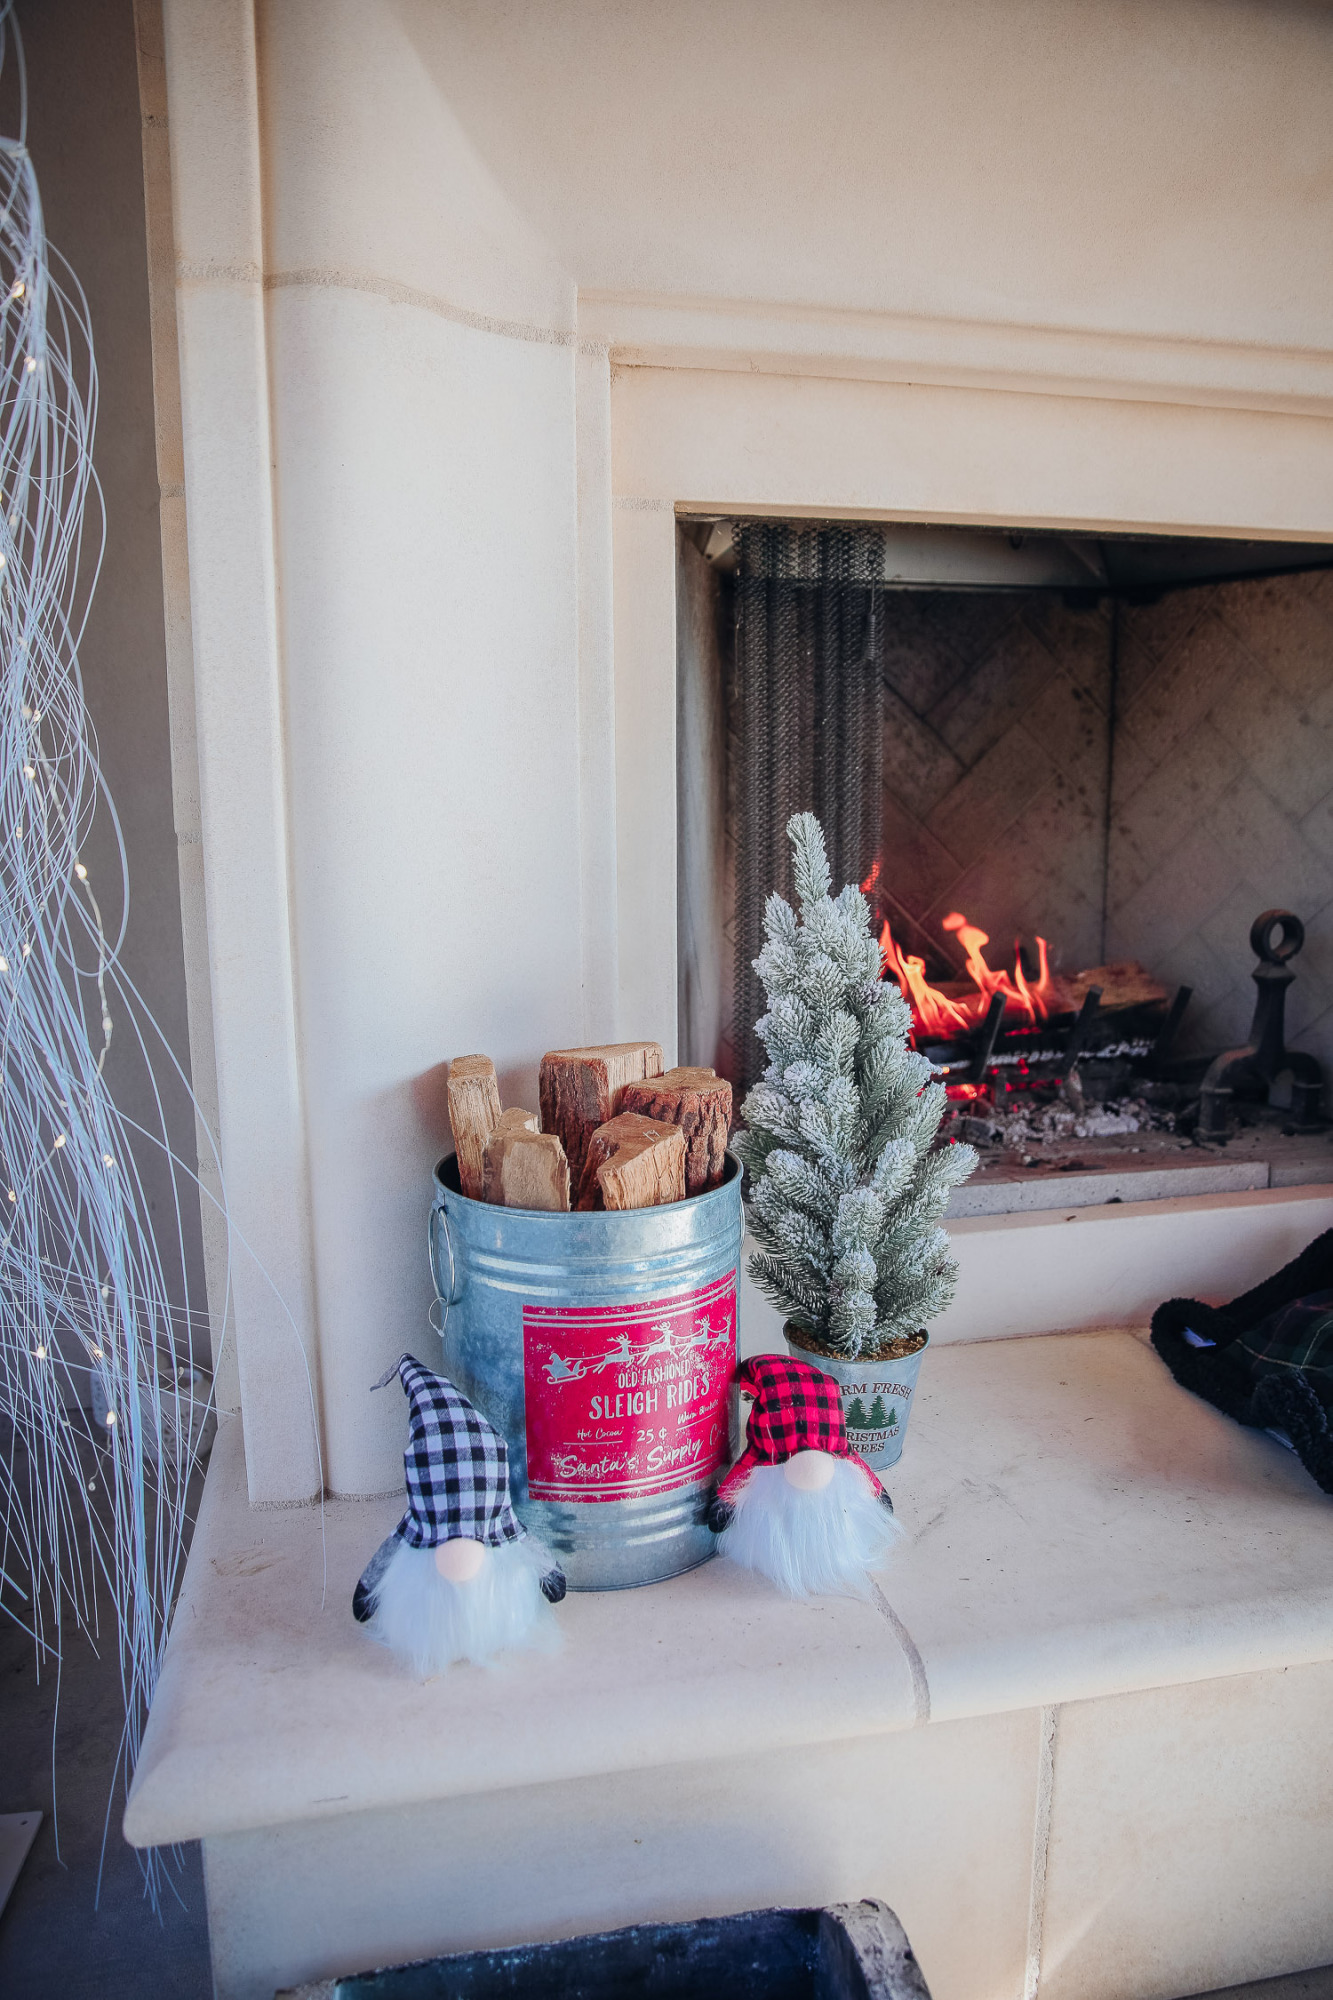 backyard decor christmas, outdoor pool christmas decor, walmart pool ornament, emily gemma backyard |Christmas Pool Decorations by popular US life and style blog, The Sweetest Thing: image of a pool house decorated with a mini flocked Christmas tree, metal bucket filled with firewood, and santa decor.